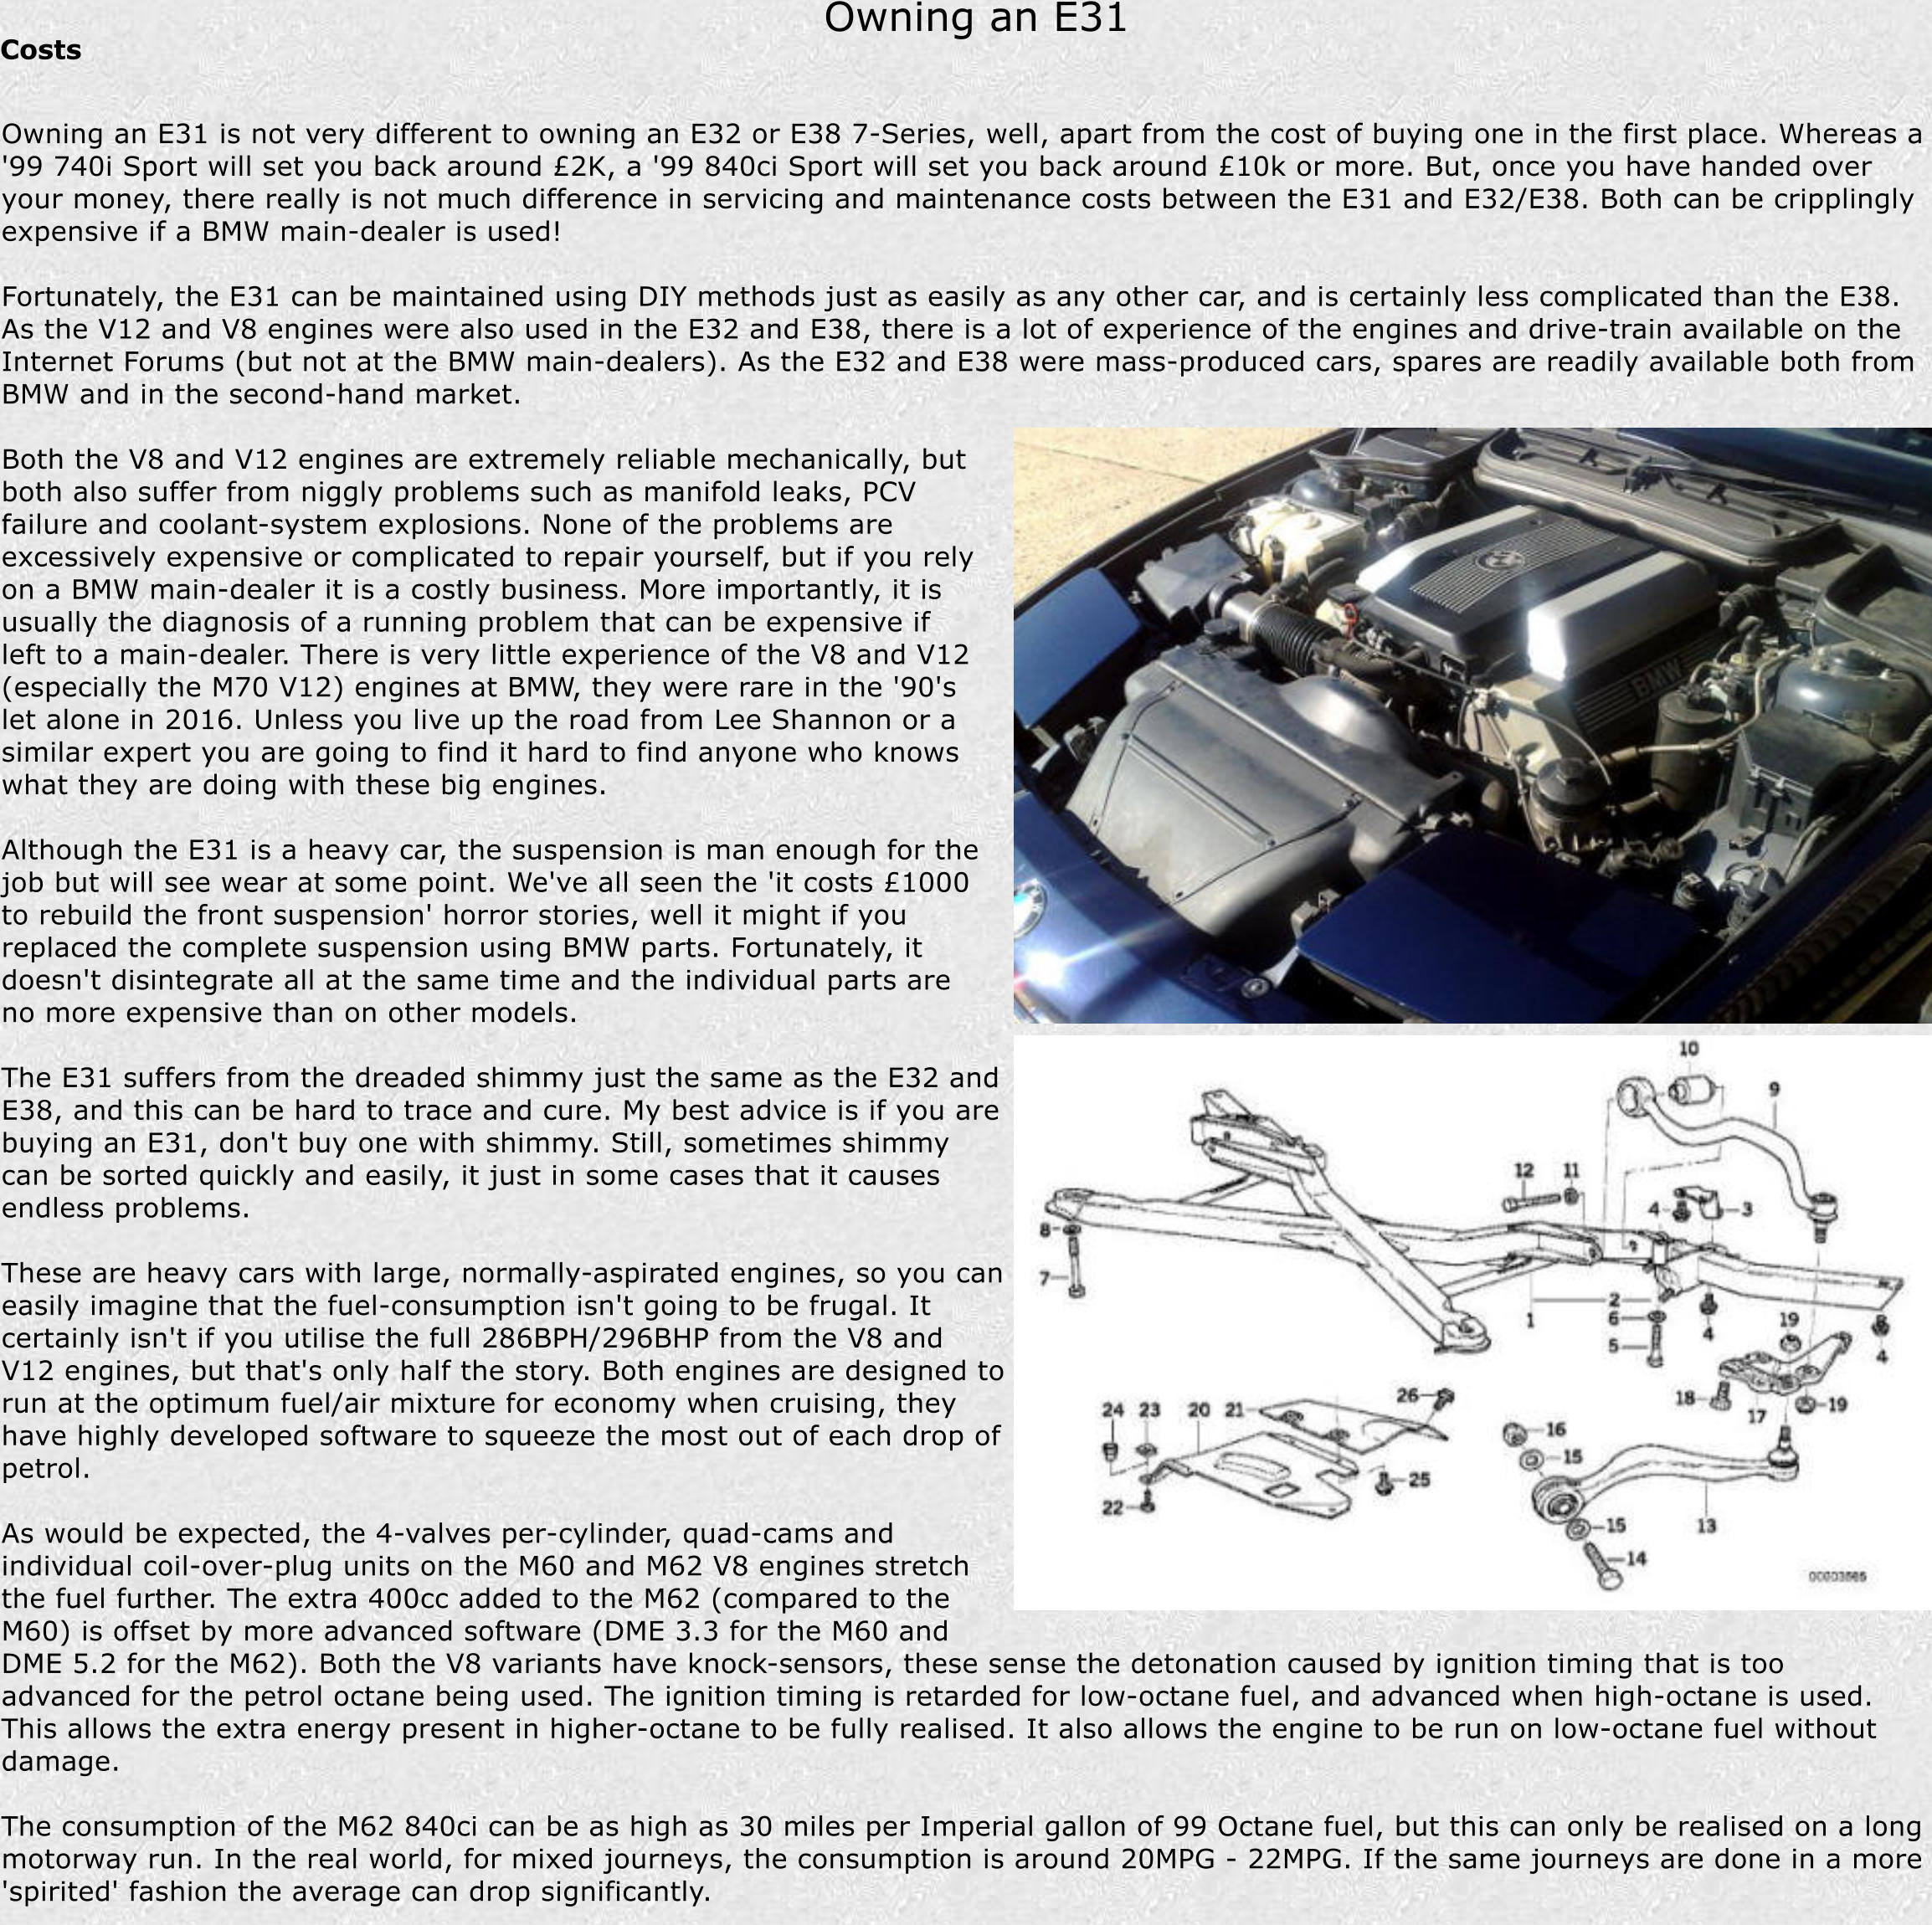 Timms Bmw E31 8 Series Buying Guide 850i Engine Wiring Harness Owning An Costs Is Not Very Different To E32 Or